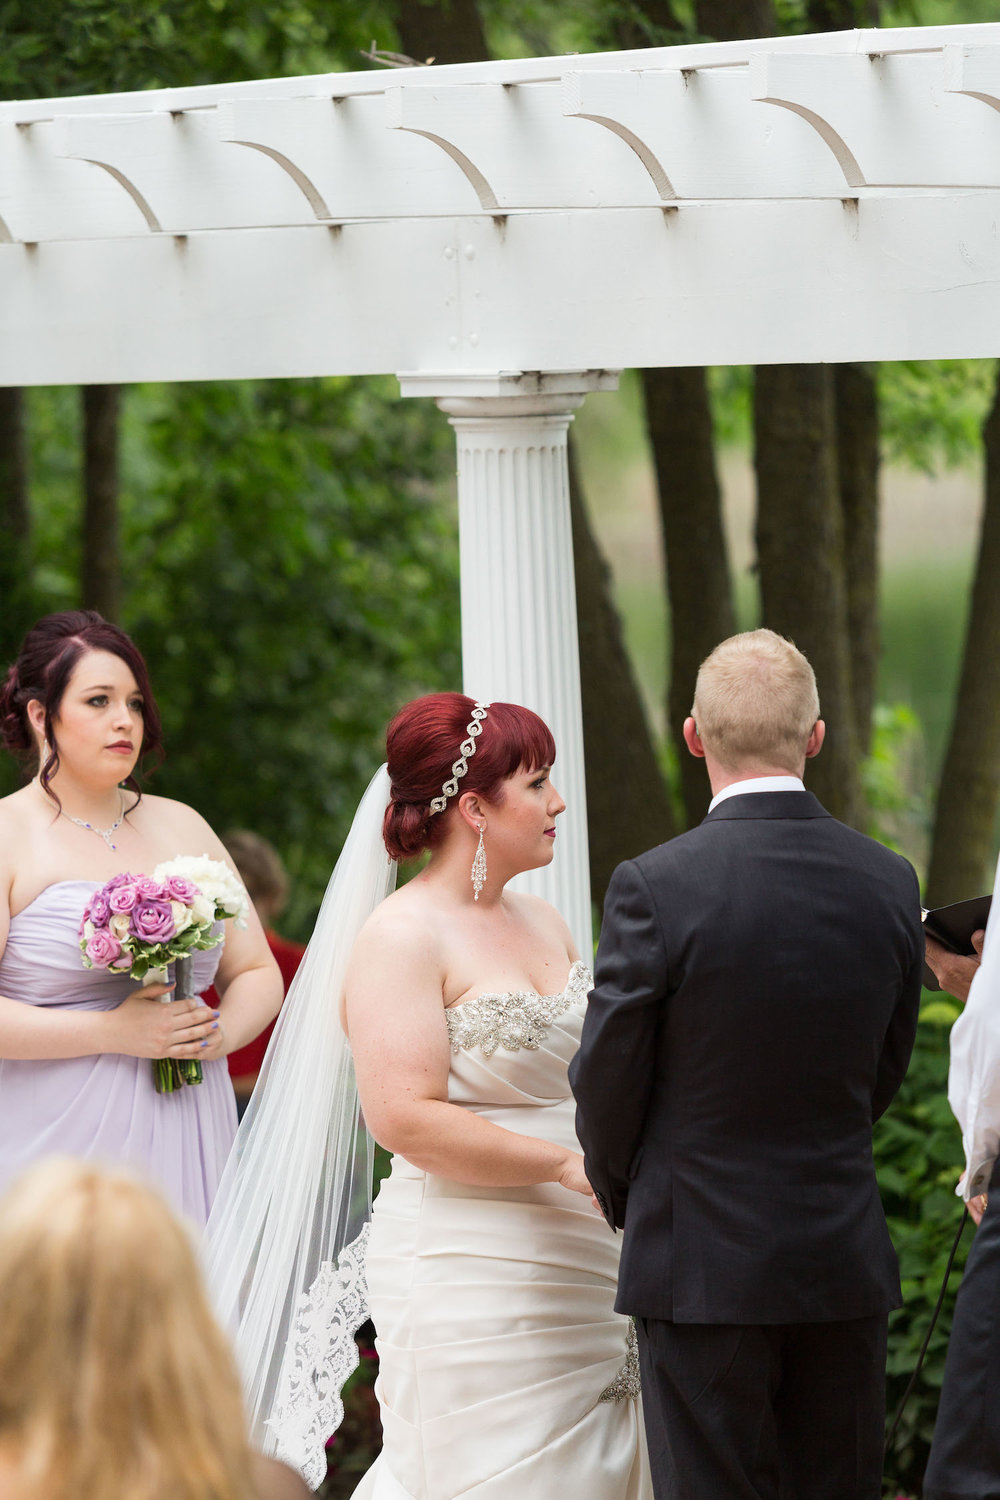 Cindyrella's Garden outdoor ceremony by the lake with a redhead bride, lavender bridesmaids